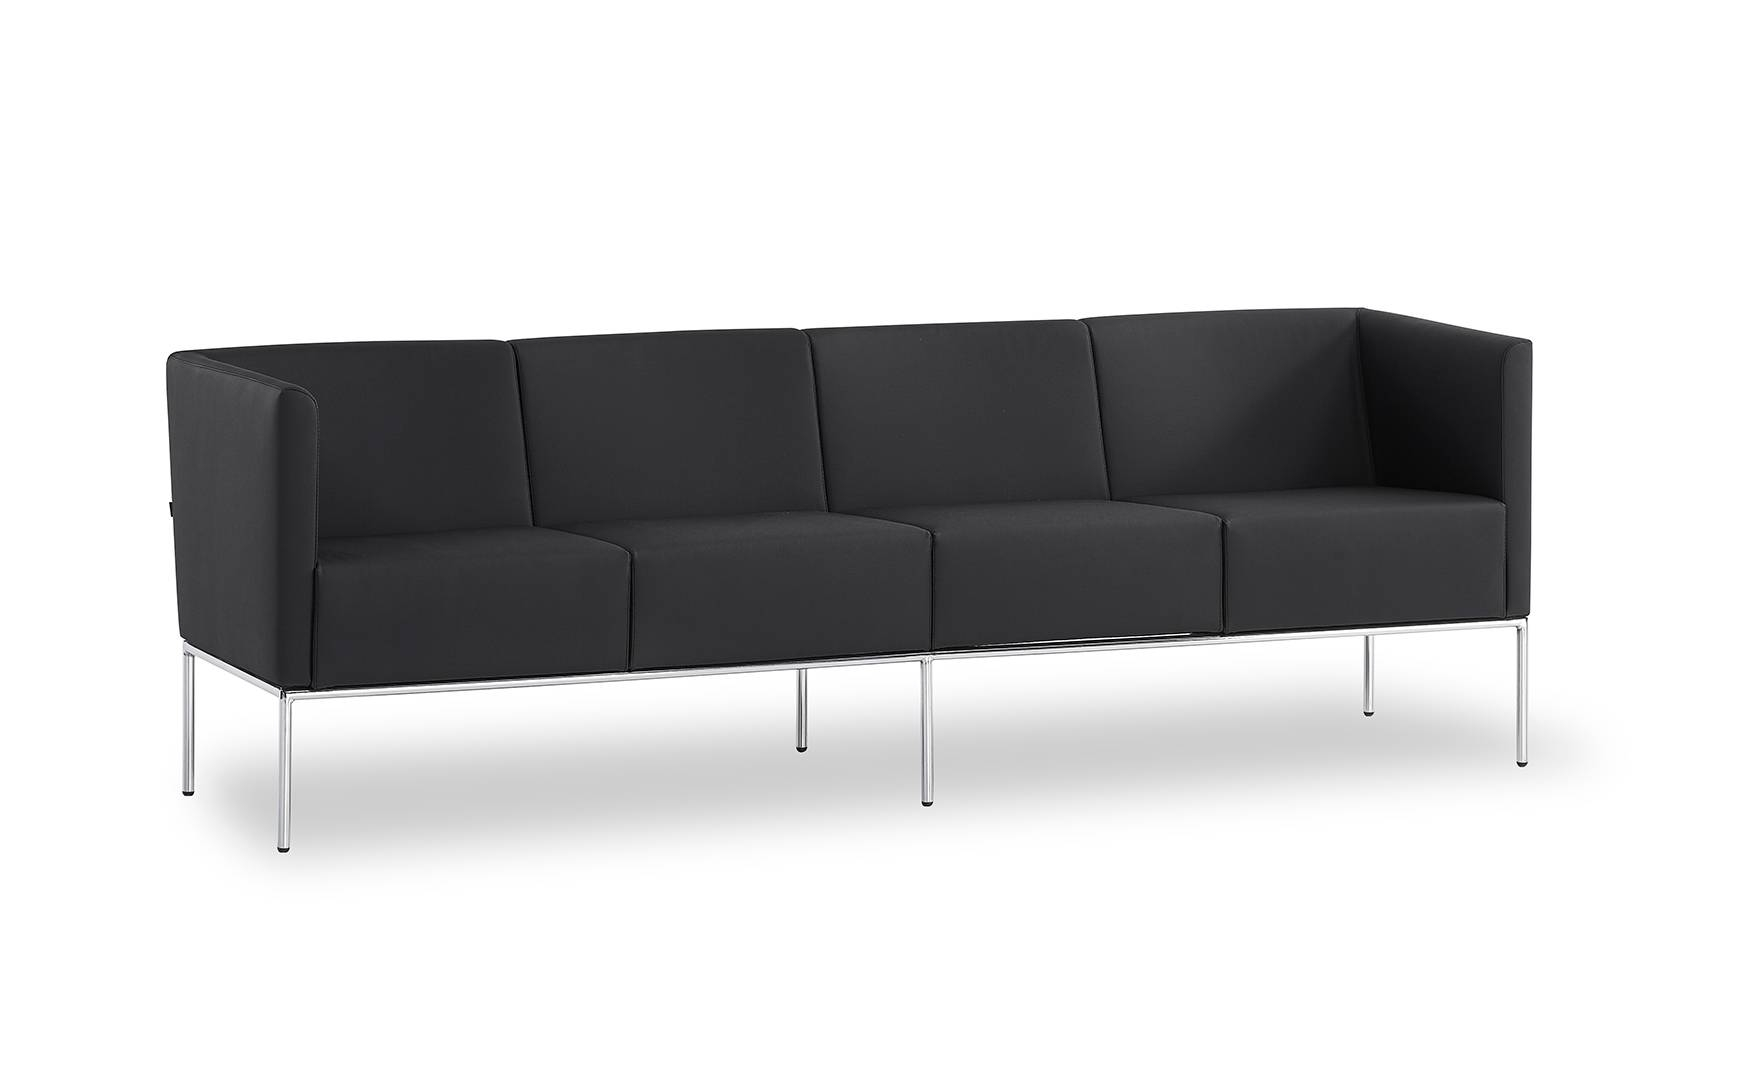 B&t Design | Products | Sofas | Tiny with regard to Tiny Sofas (Image 3 of 30)